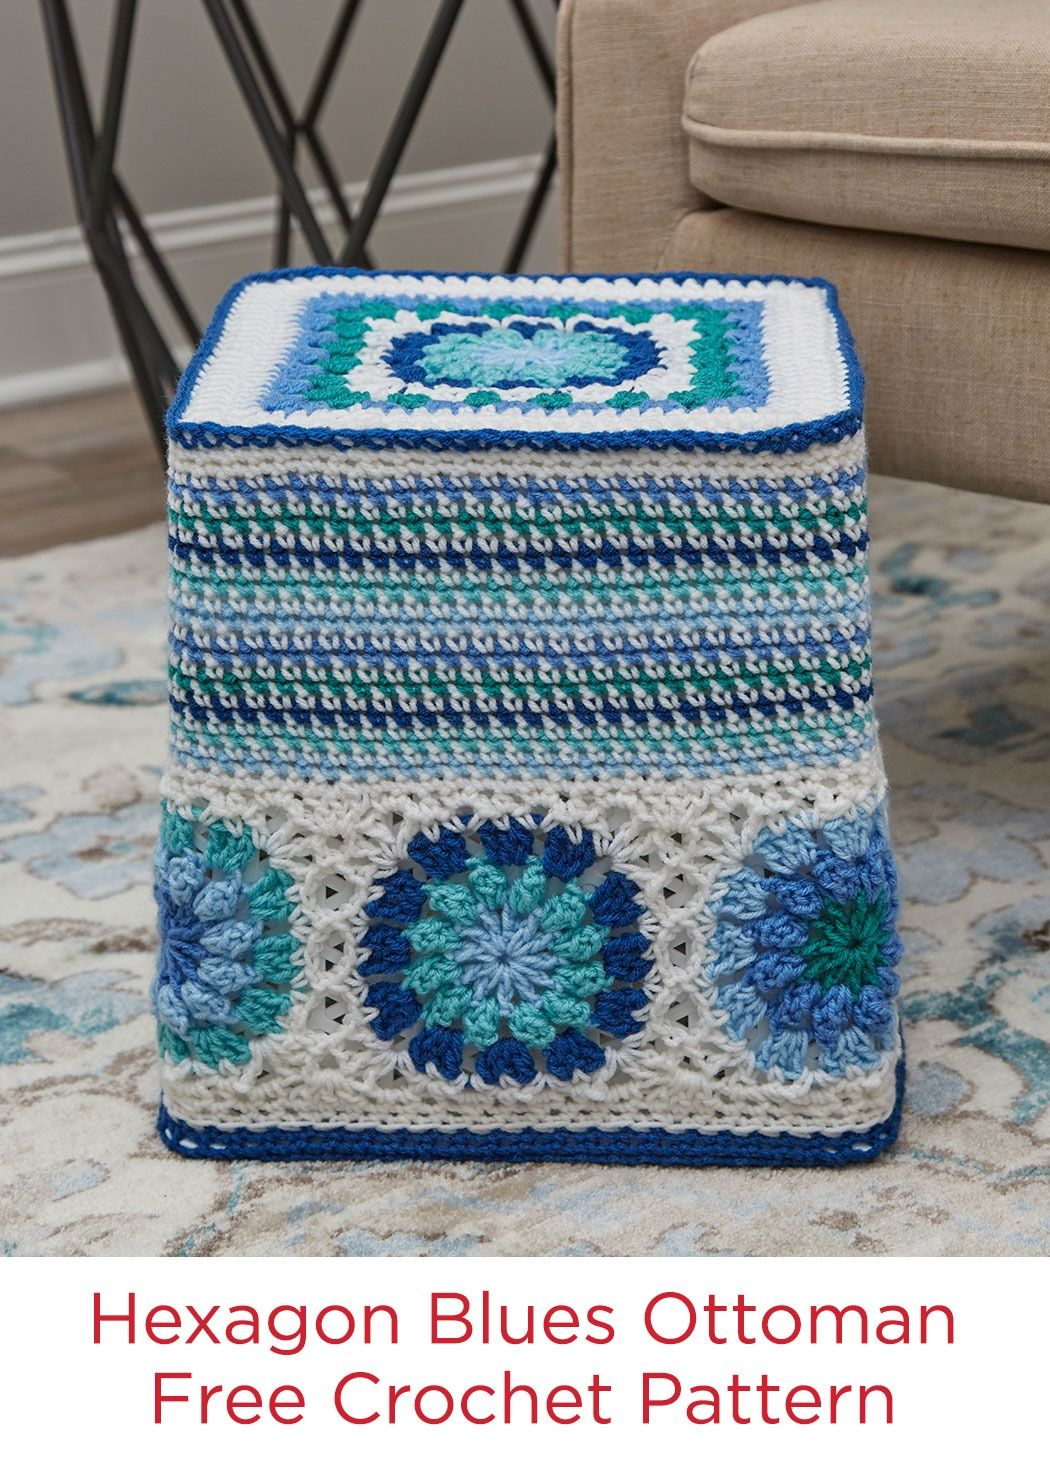 Hexagon Blues Ottoman Free Crochet Pattern In Red Heart Super Saver